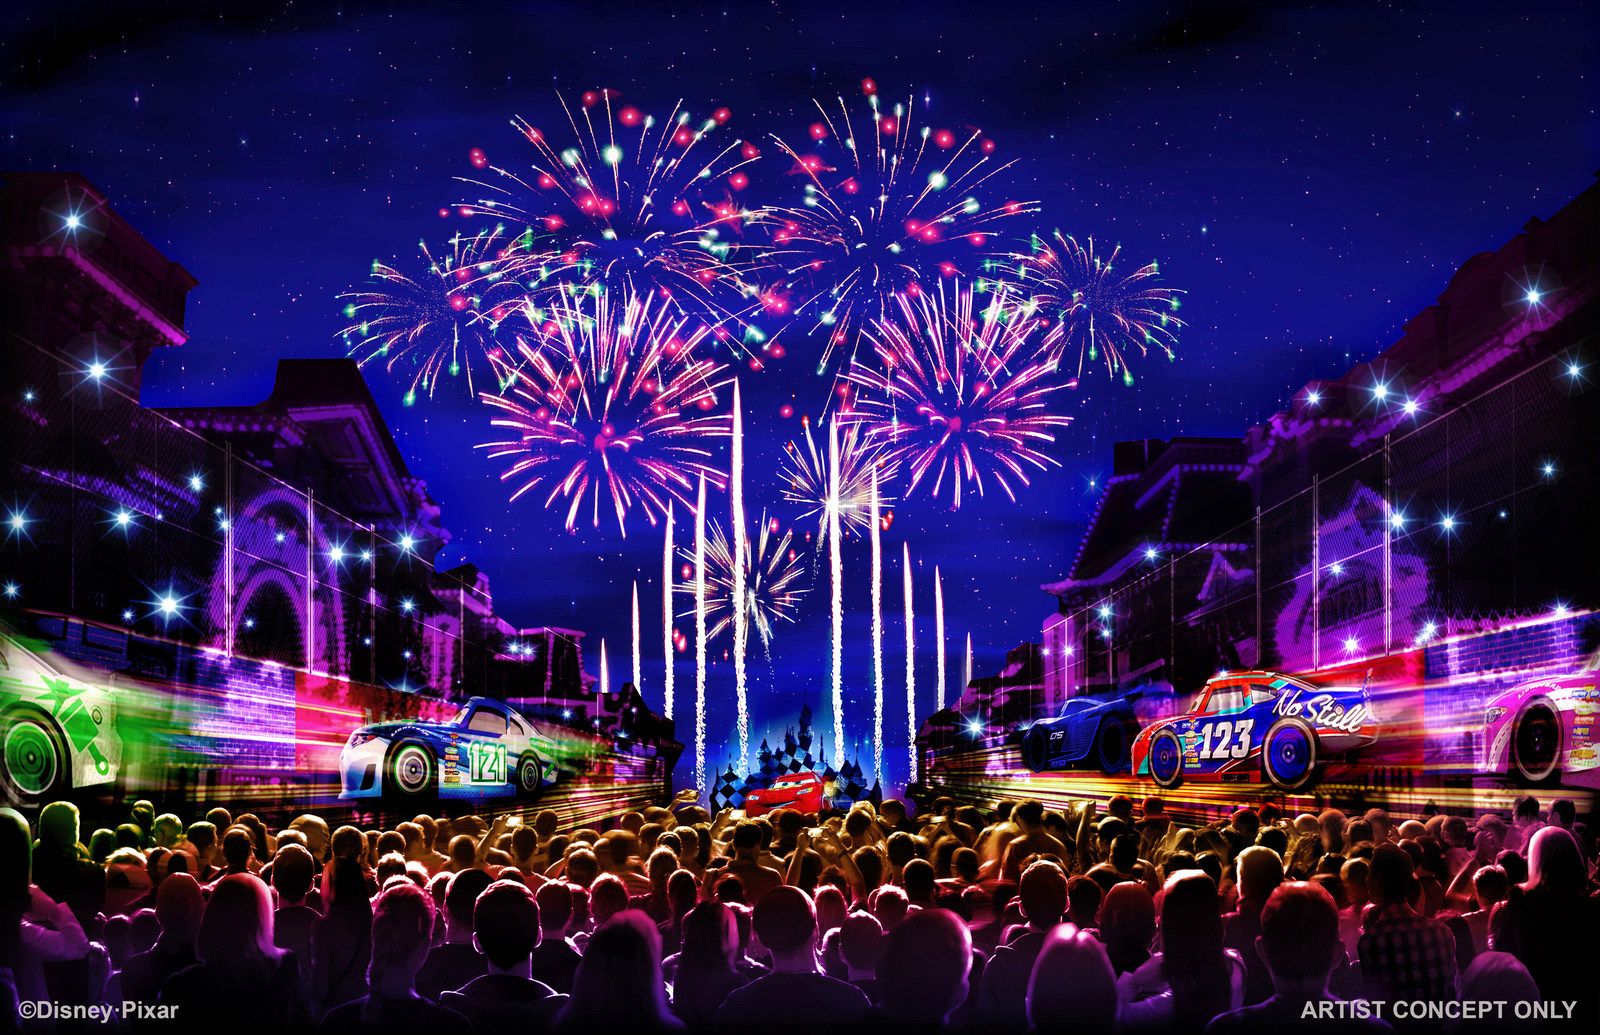 Pixar Fest, the Biggest Theme Park Celebration of Stories and Characters from Pixar Animation Studios, Opens at the Disneyland Resort April 13, 2018